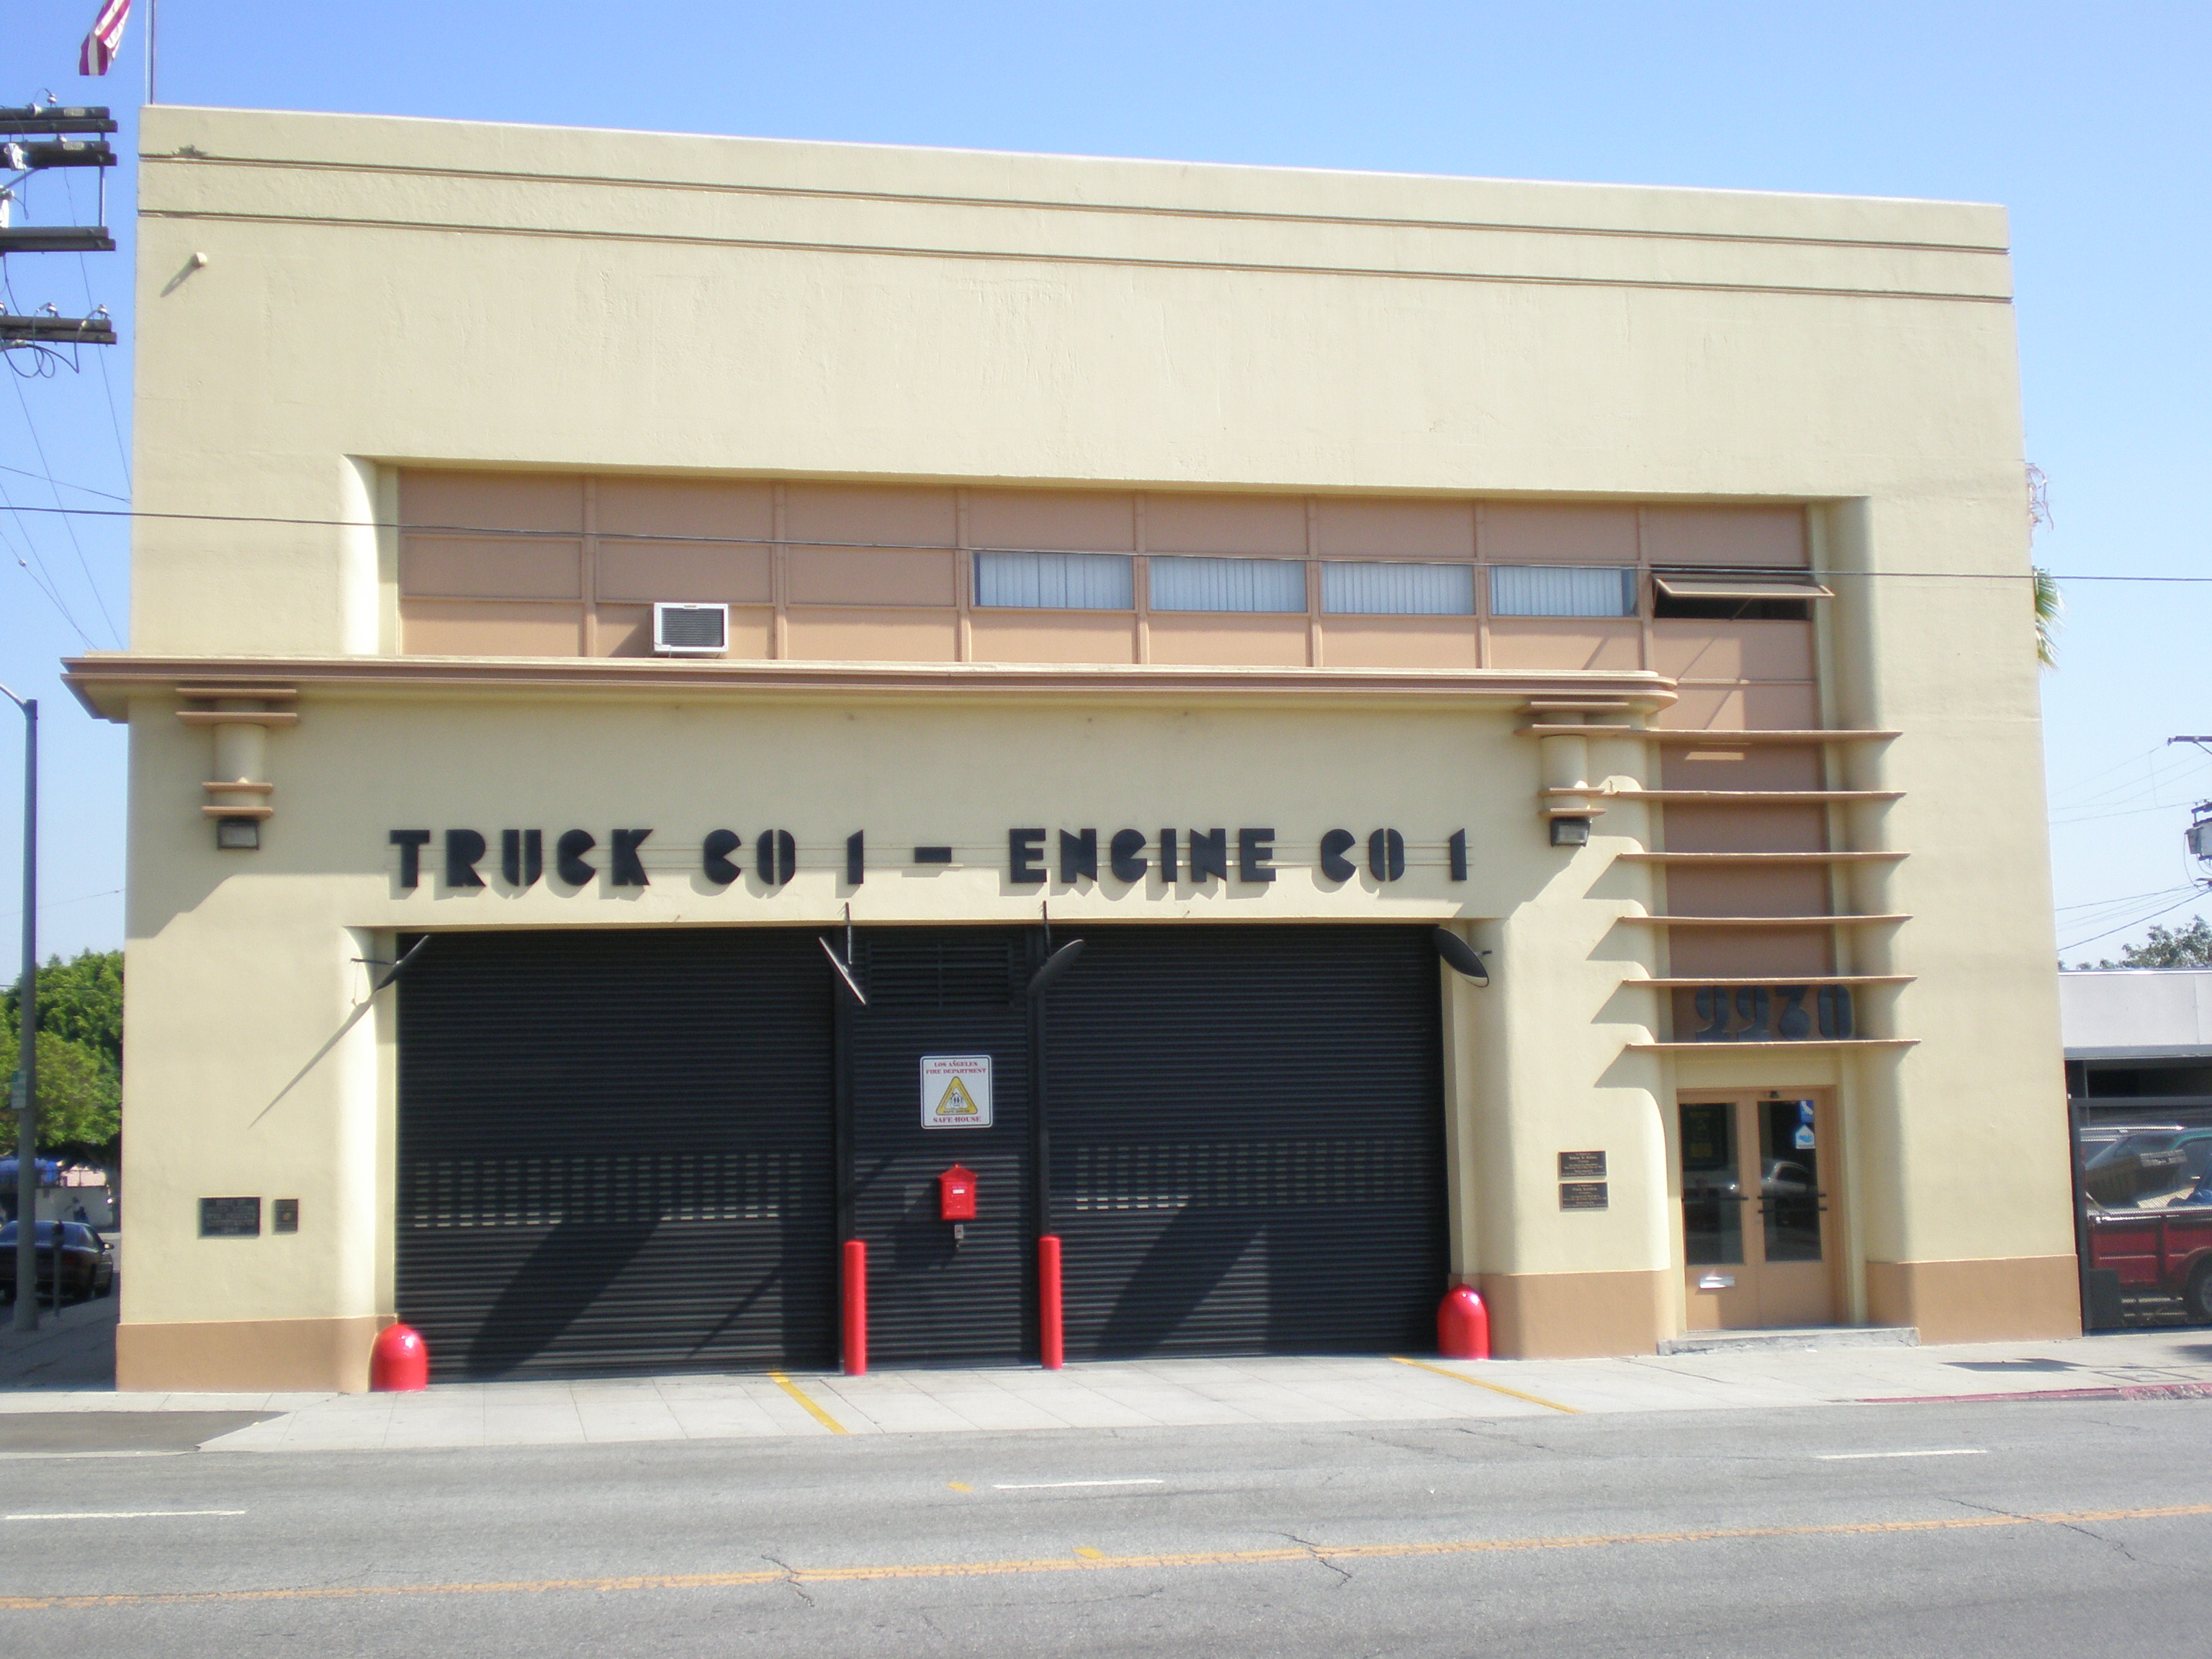 Fire Station No  1 (Los Angeles, California) - Wikipedia